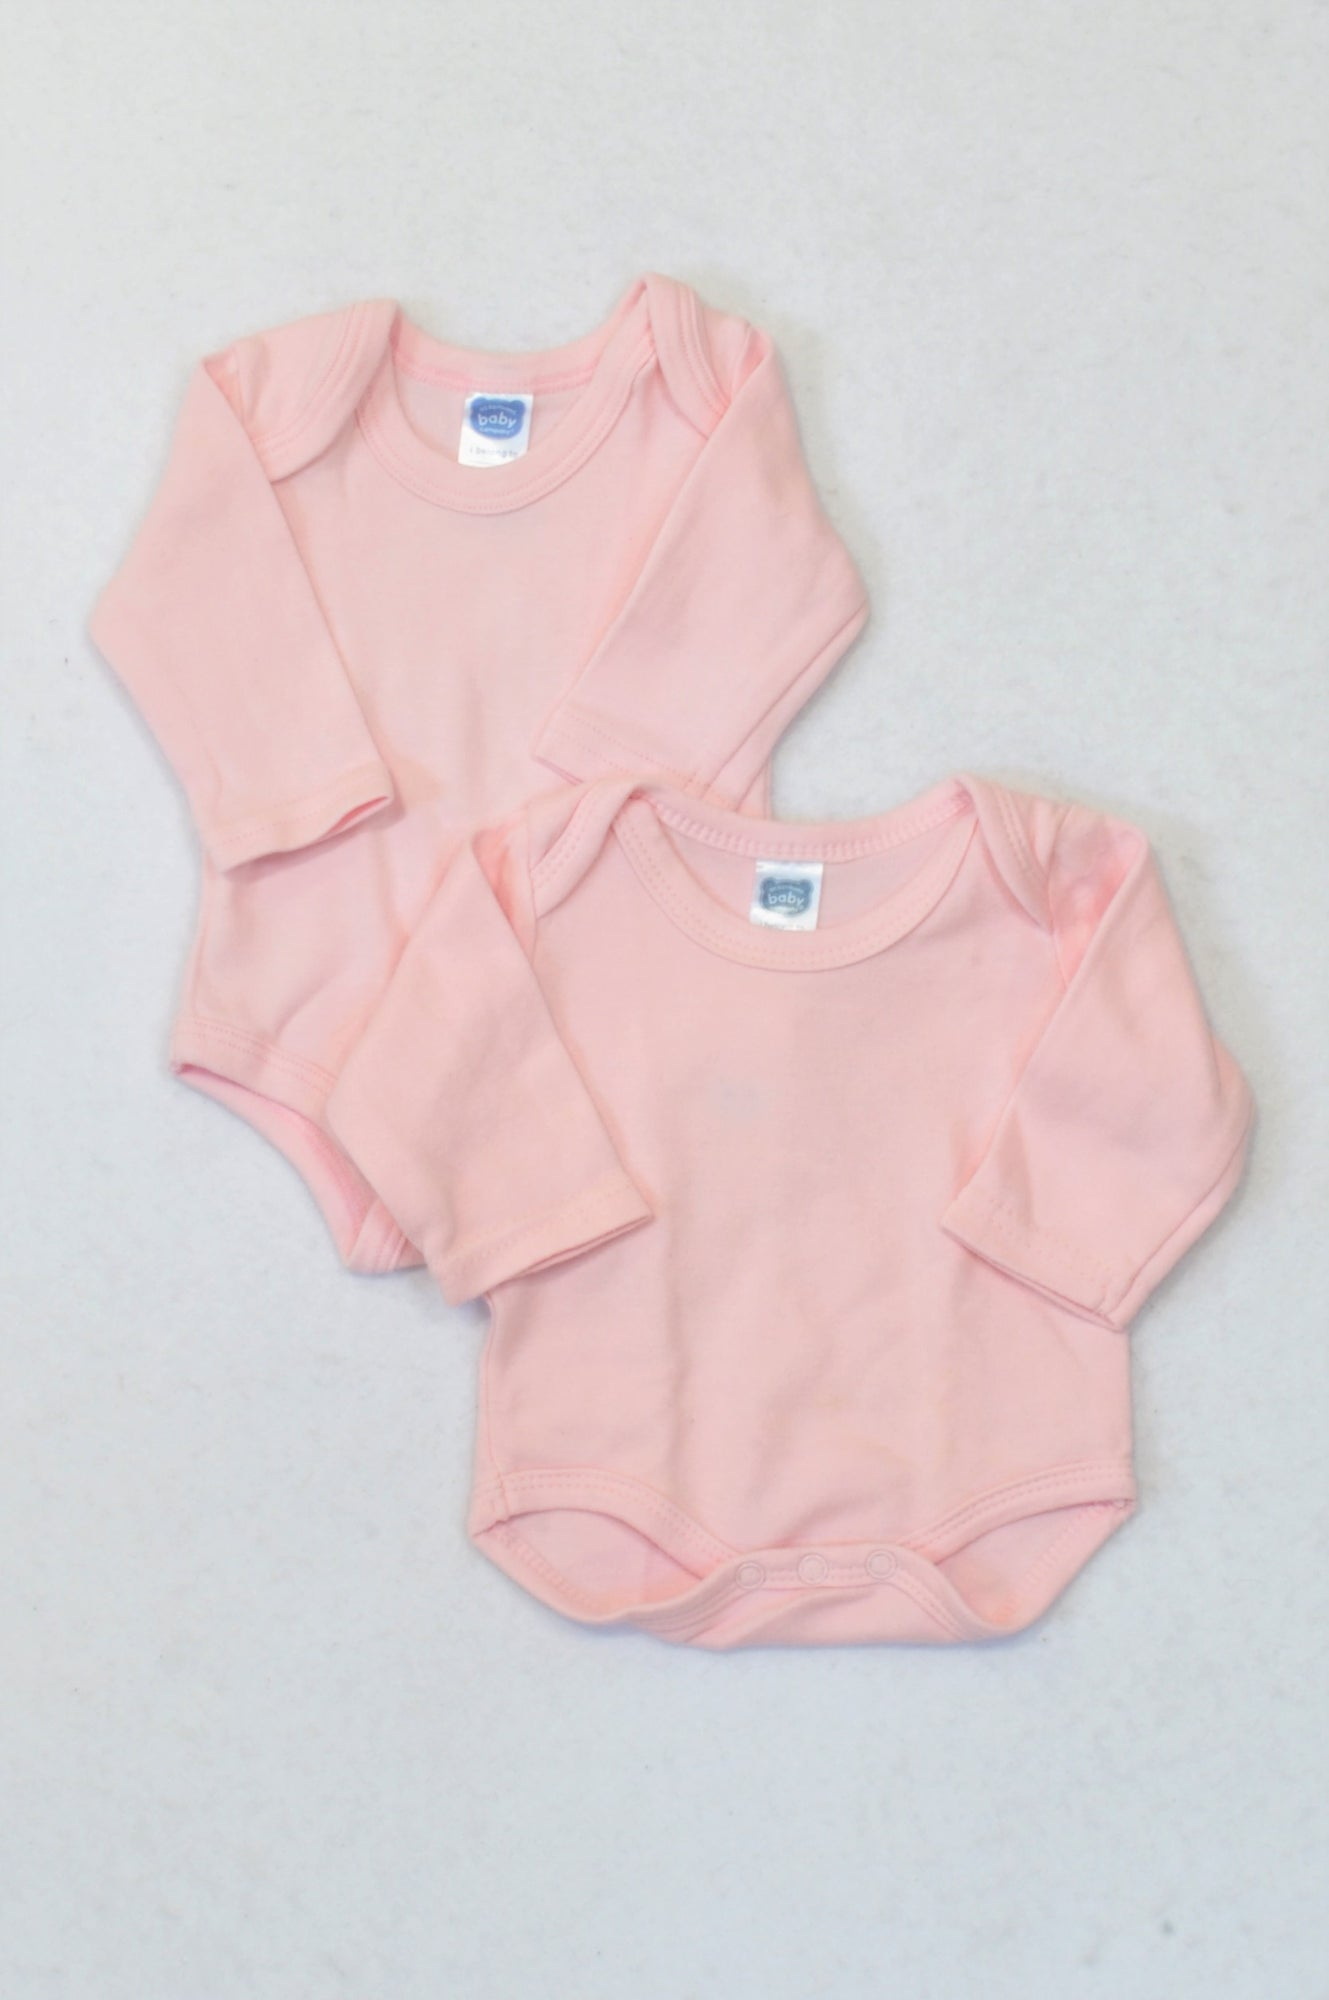 Ackermans 2 pack Soft Pink Long Sleeve Baby Grow Girls Tiny Baby